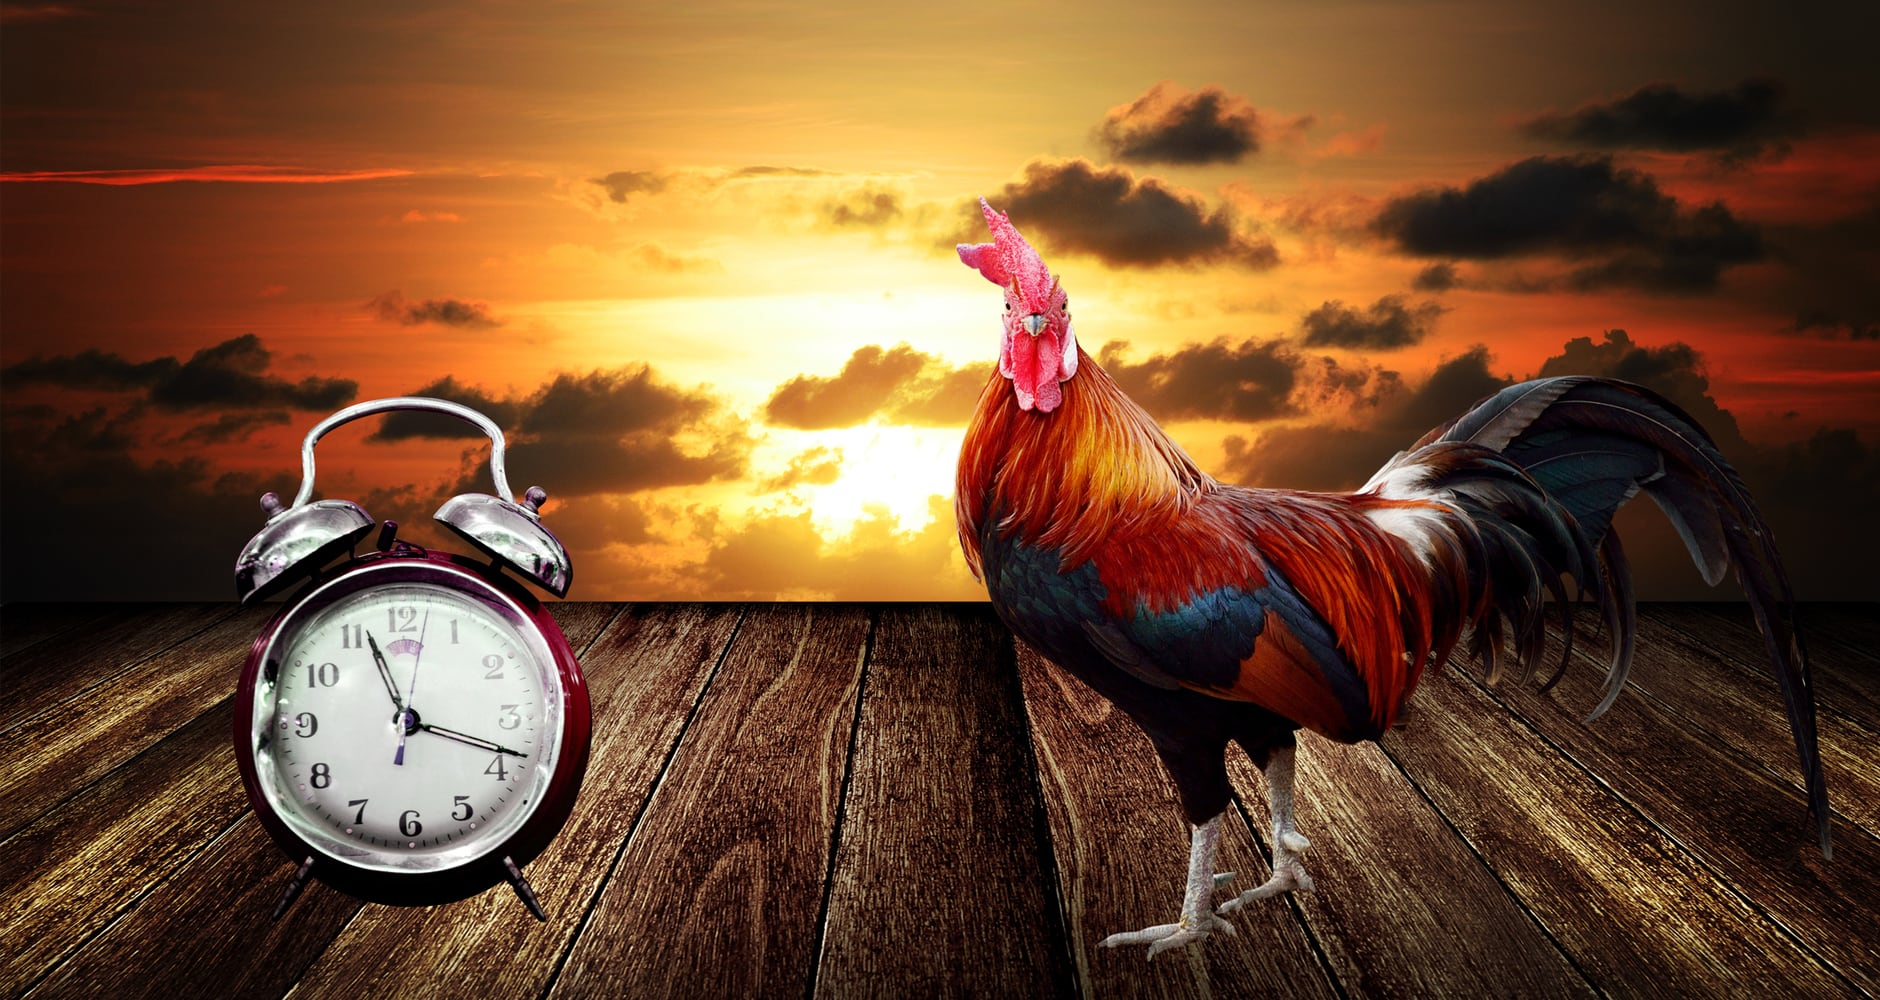 Daylight Saving for 5: When Does the Time Change? - Farmers